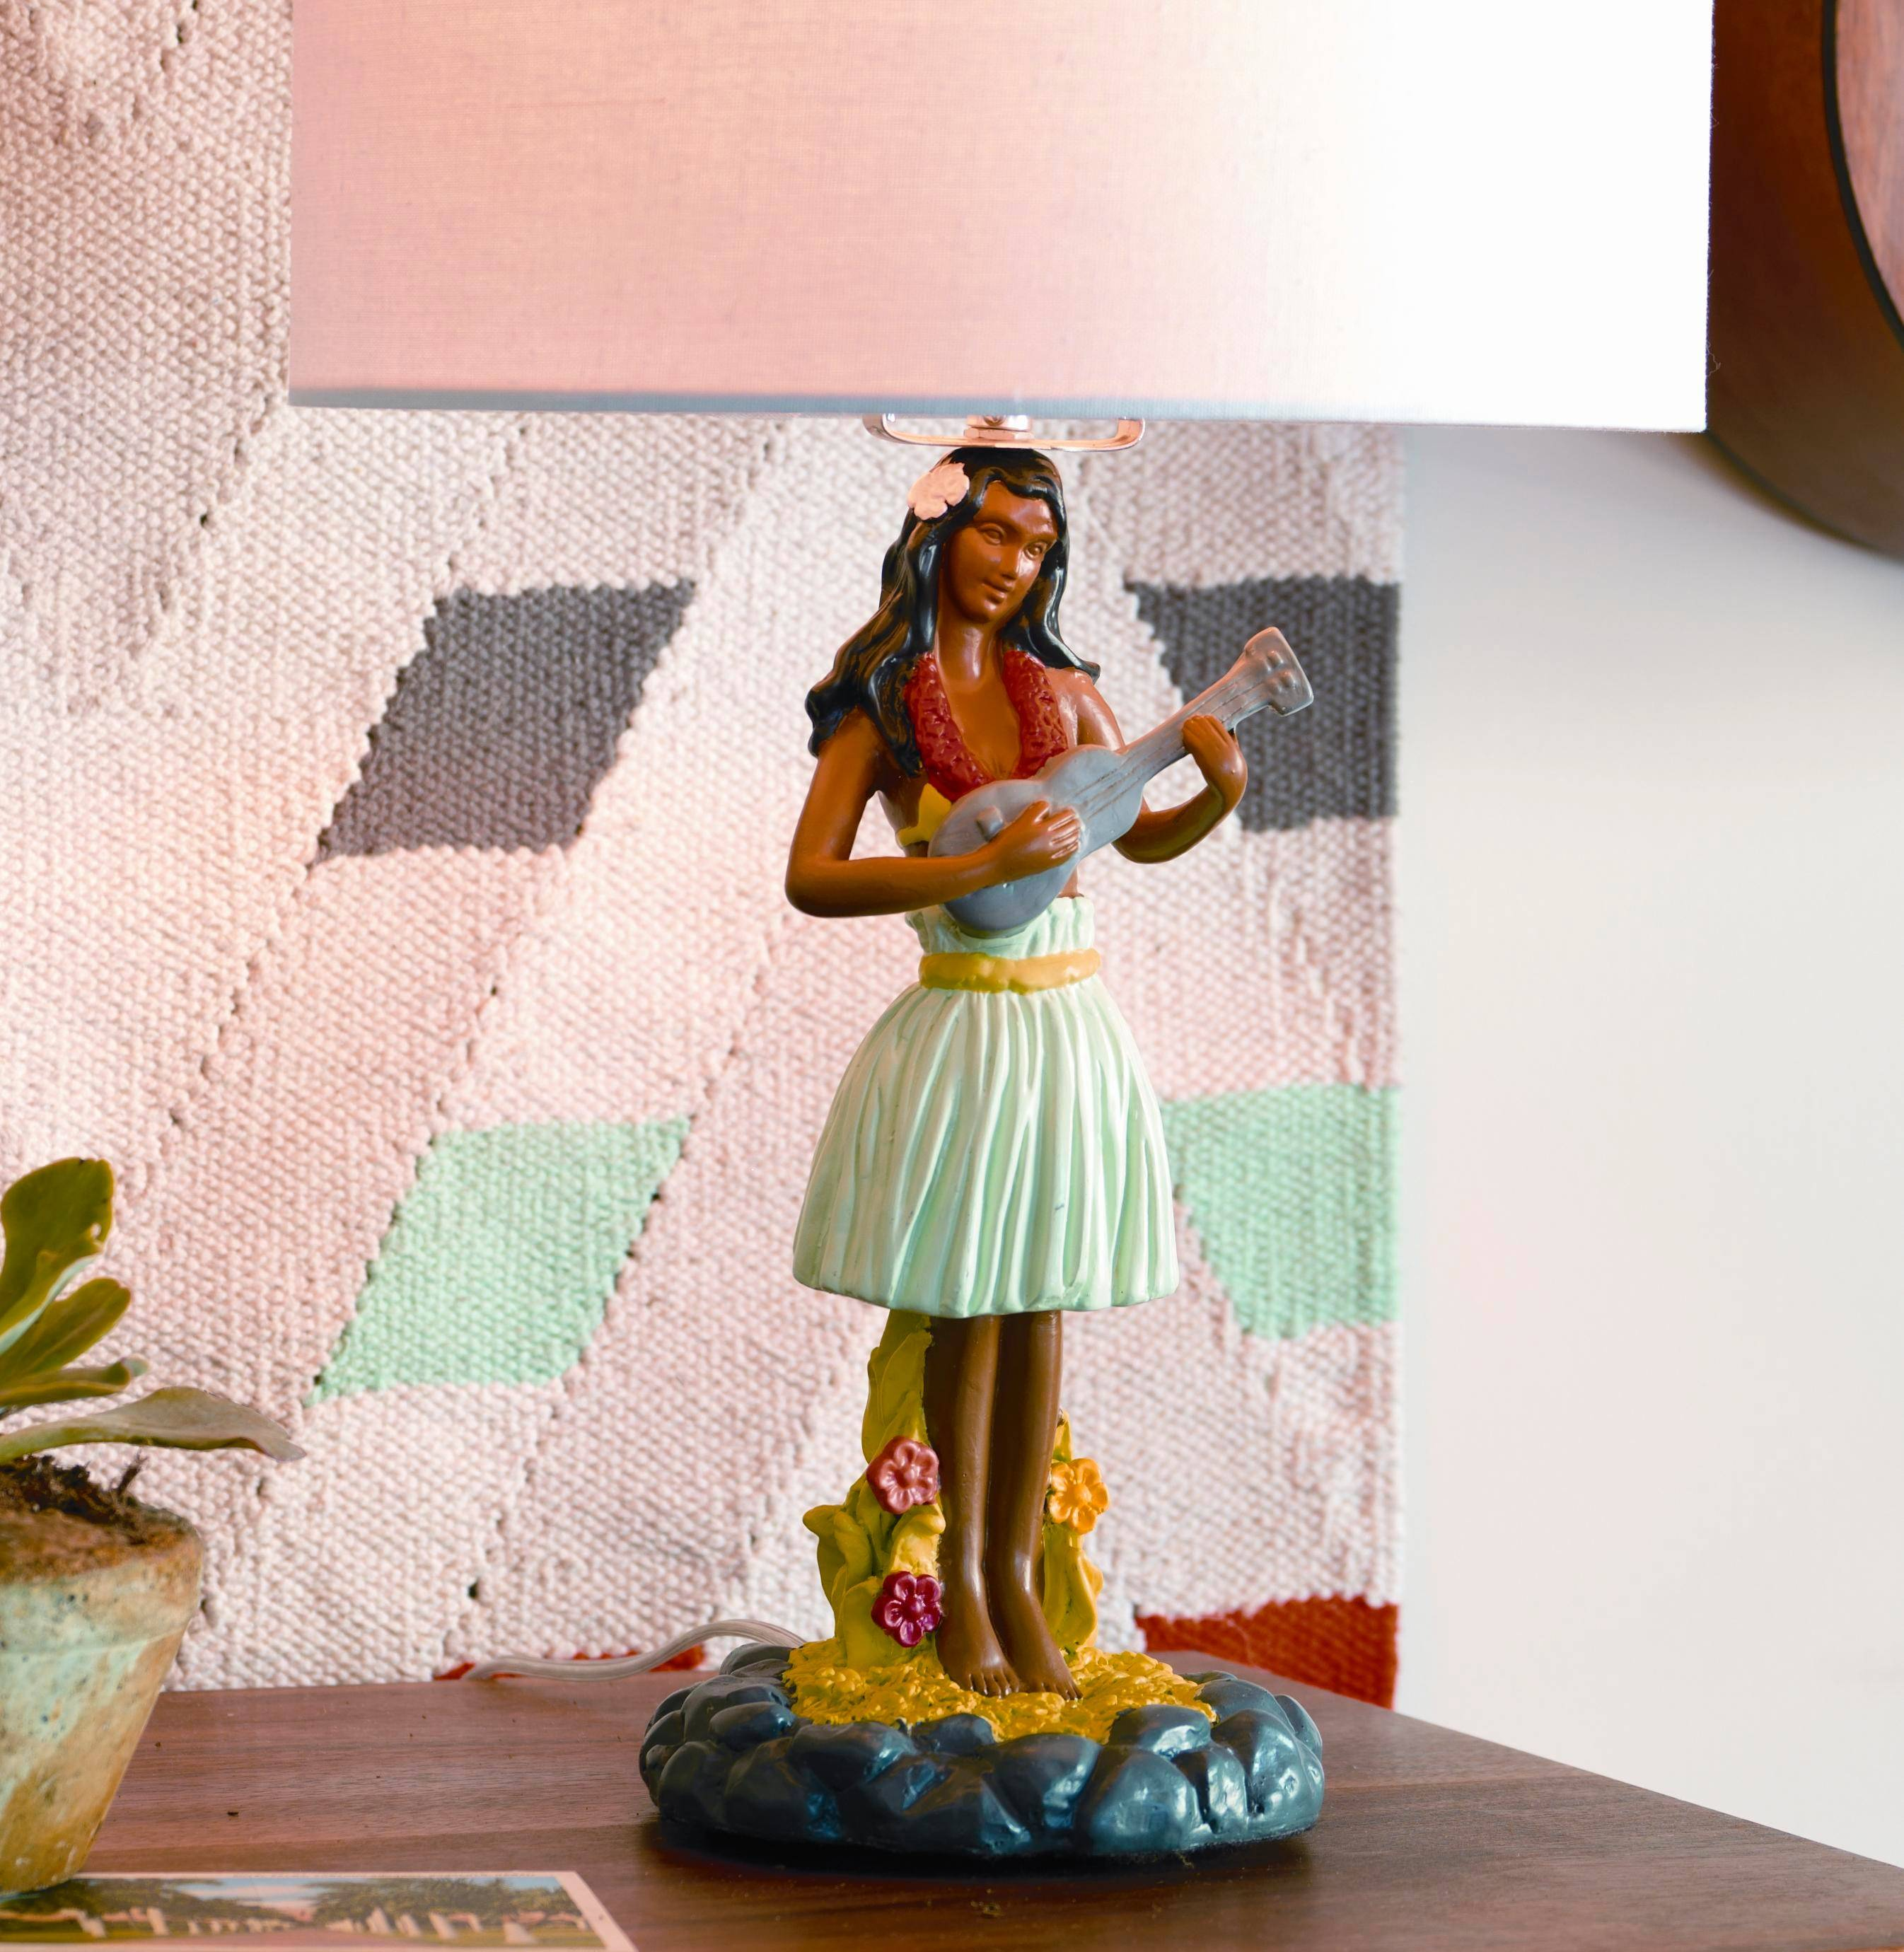 Hawaiian kitsch at its finest, this polyresin hula girl lamp strums just the right retro note. American Retro is a current design trend.